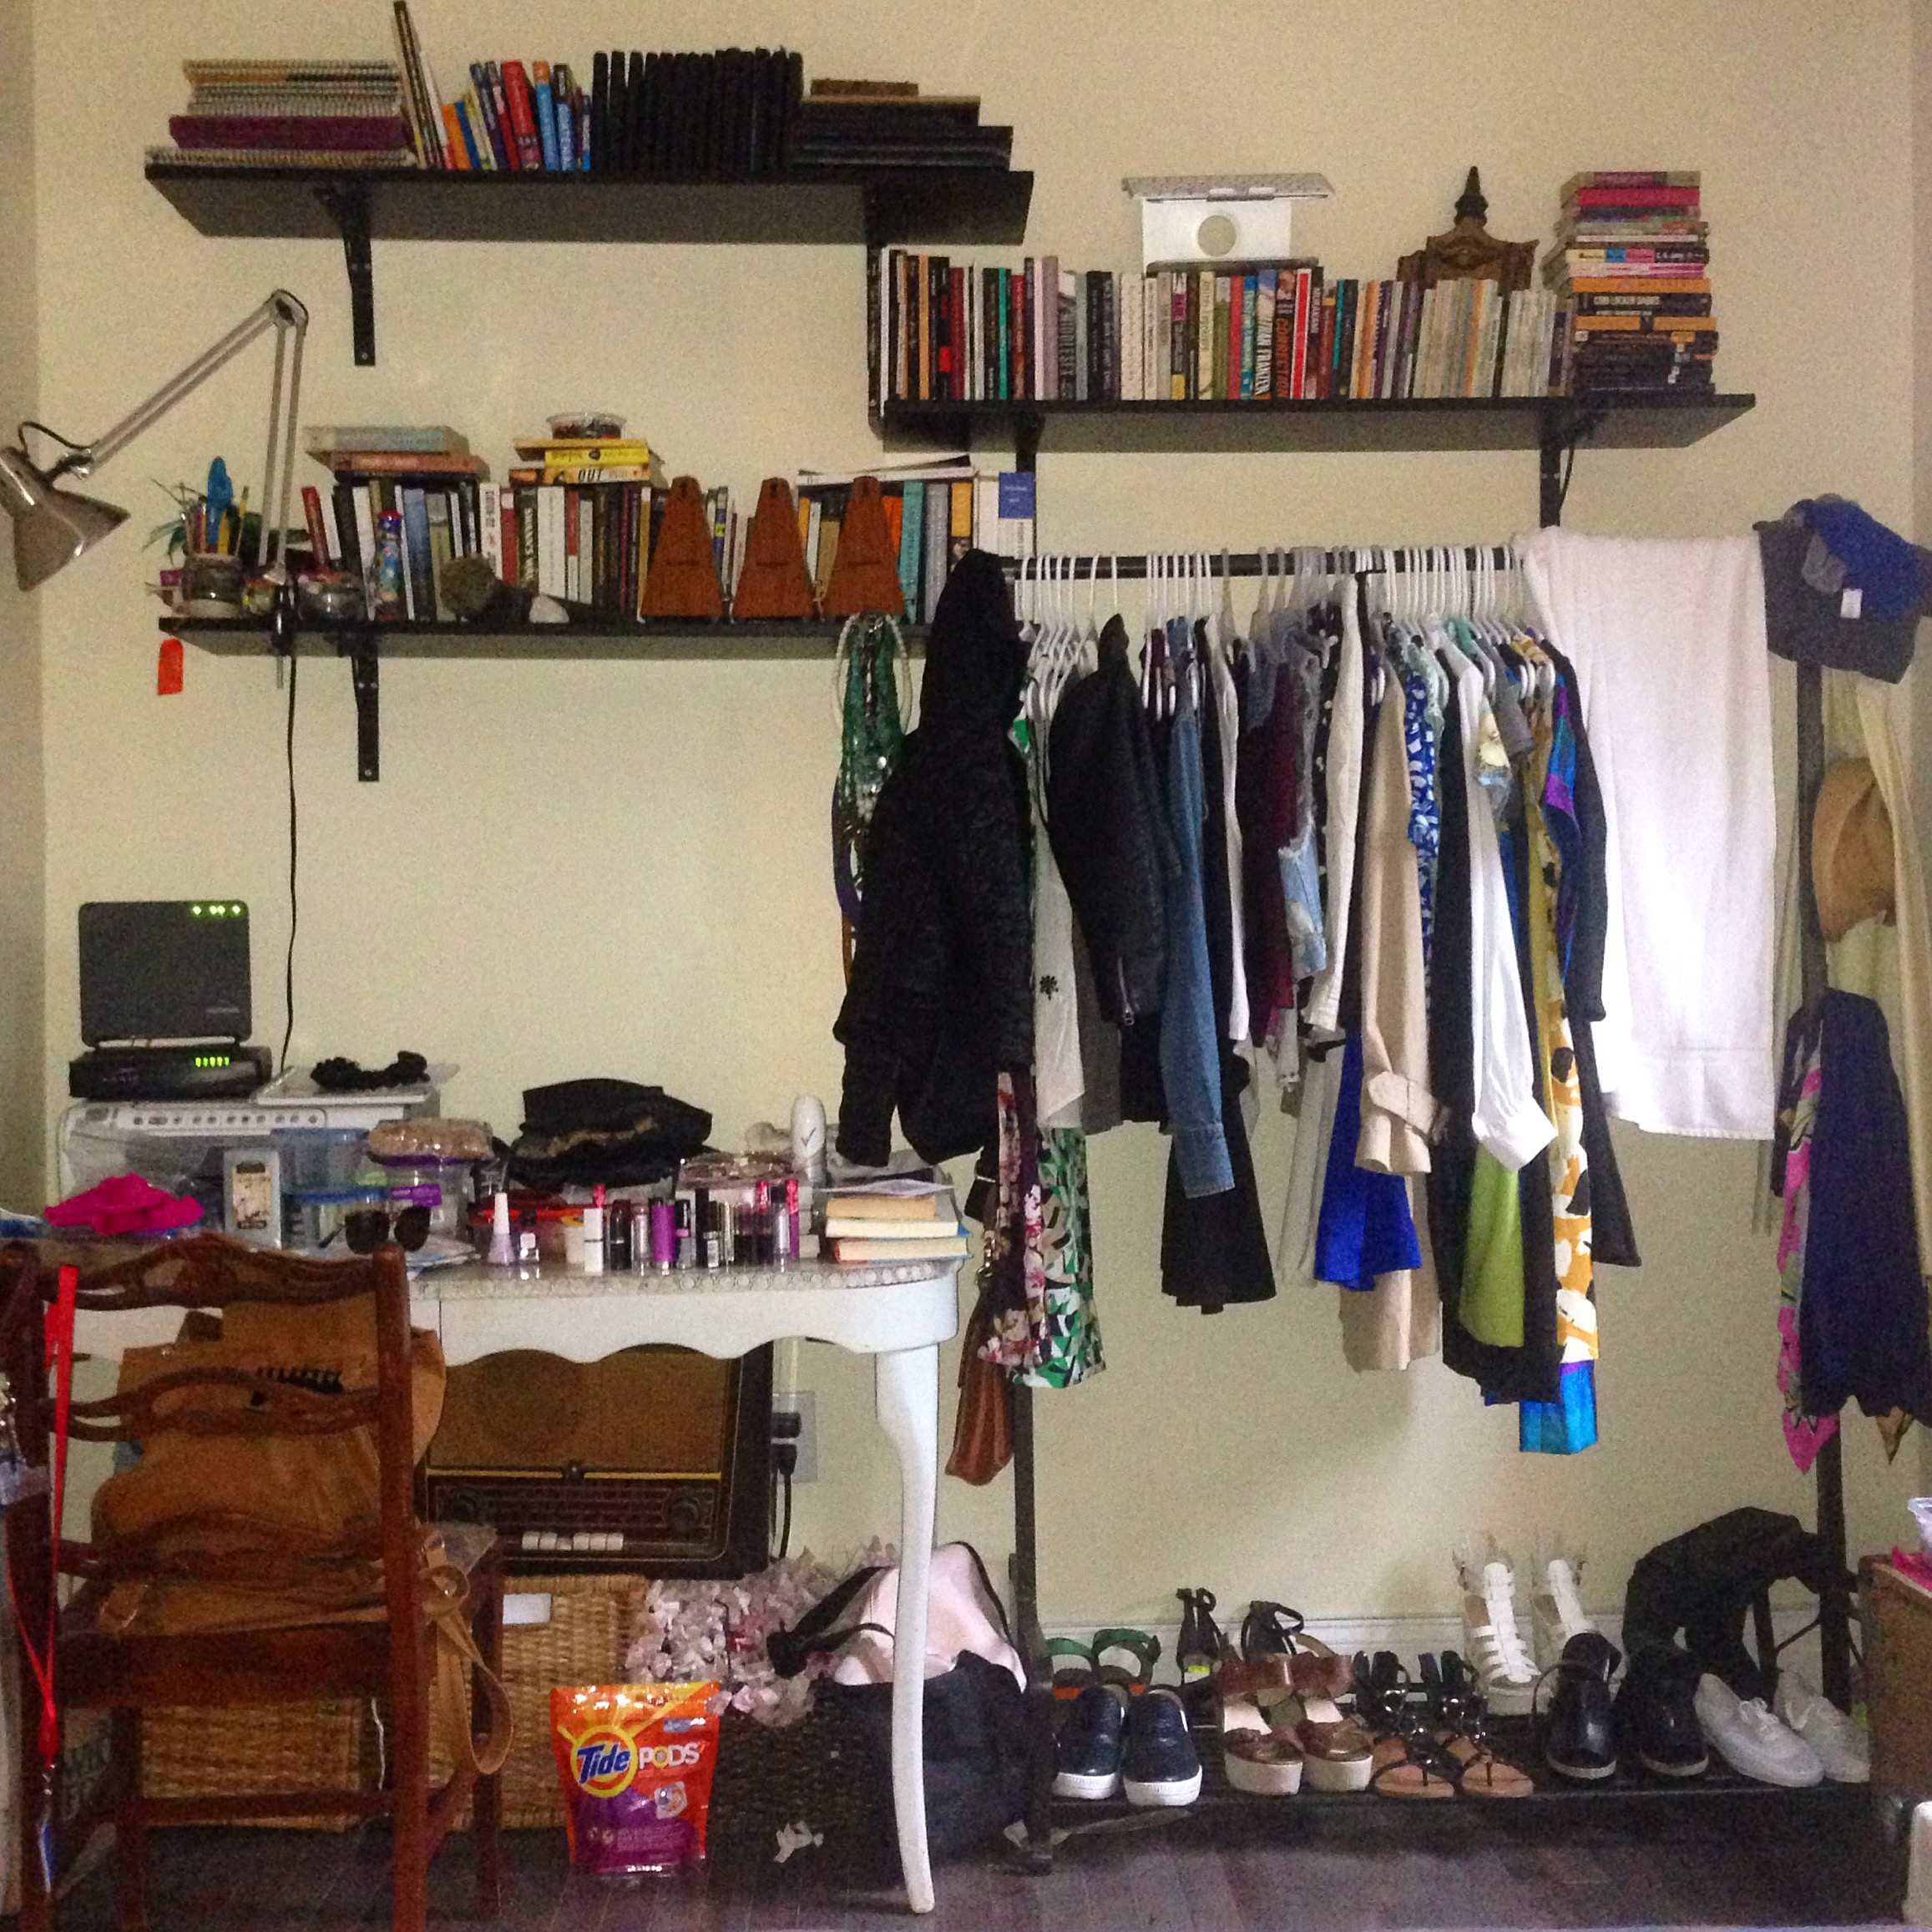 I lived in New York City in 2016 and rented a room in Brooklyn for $700/month. Living in NYC made a huge impact on me because it was the first time I lived in an extremely crowded city. Living in the city inspired me to get rid of so many things that I wasn't even using. For example, why did I pack 9 pairs of shoes? OR 12 lipsticks????? Things like that.